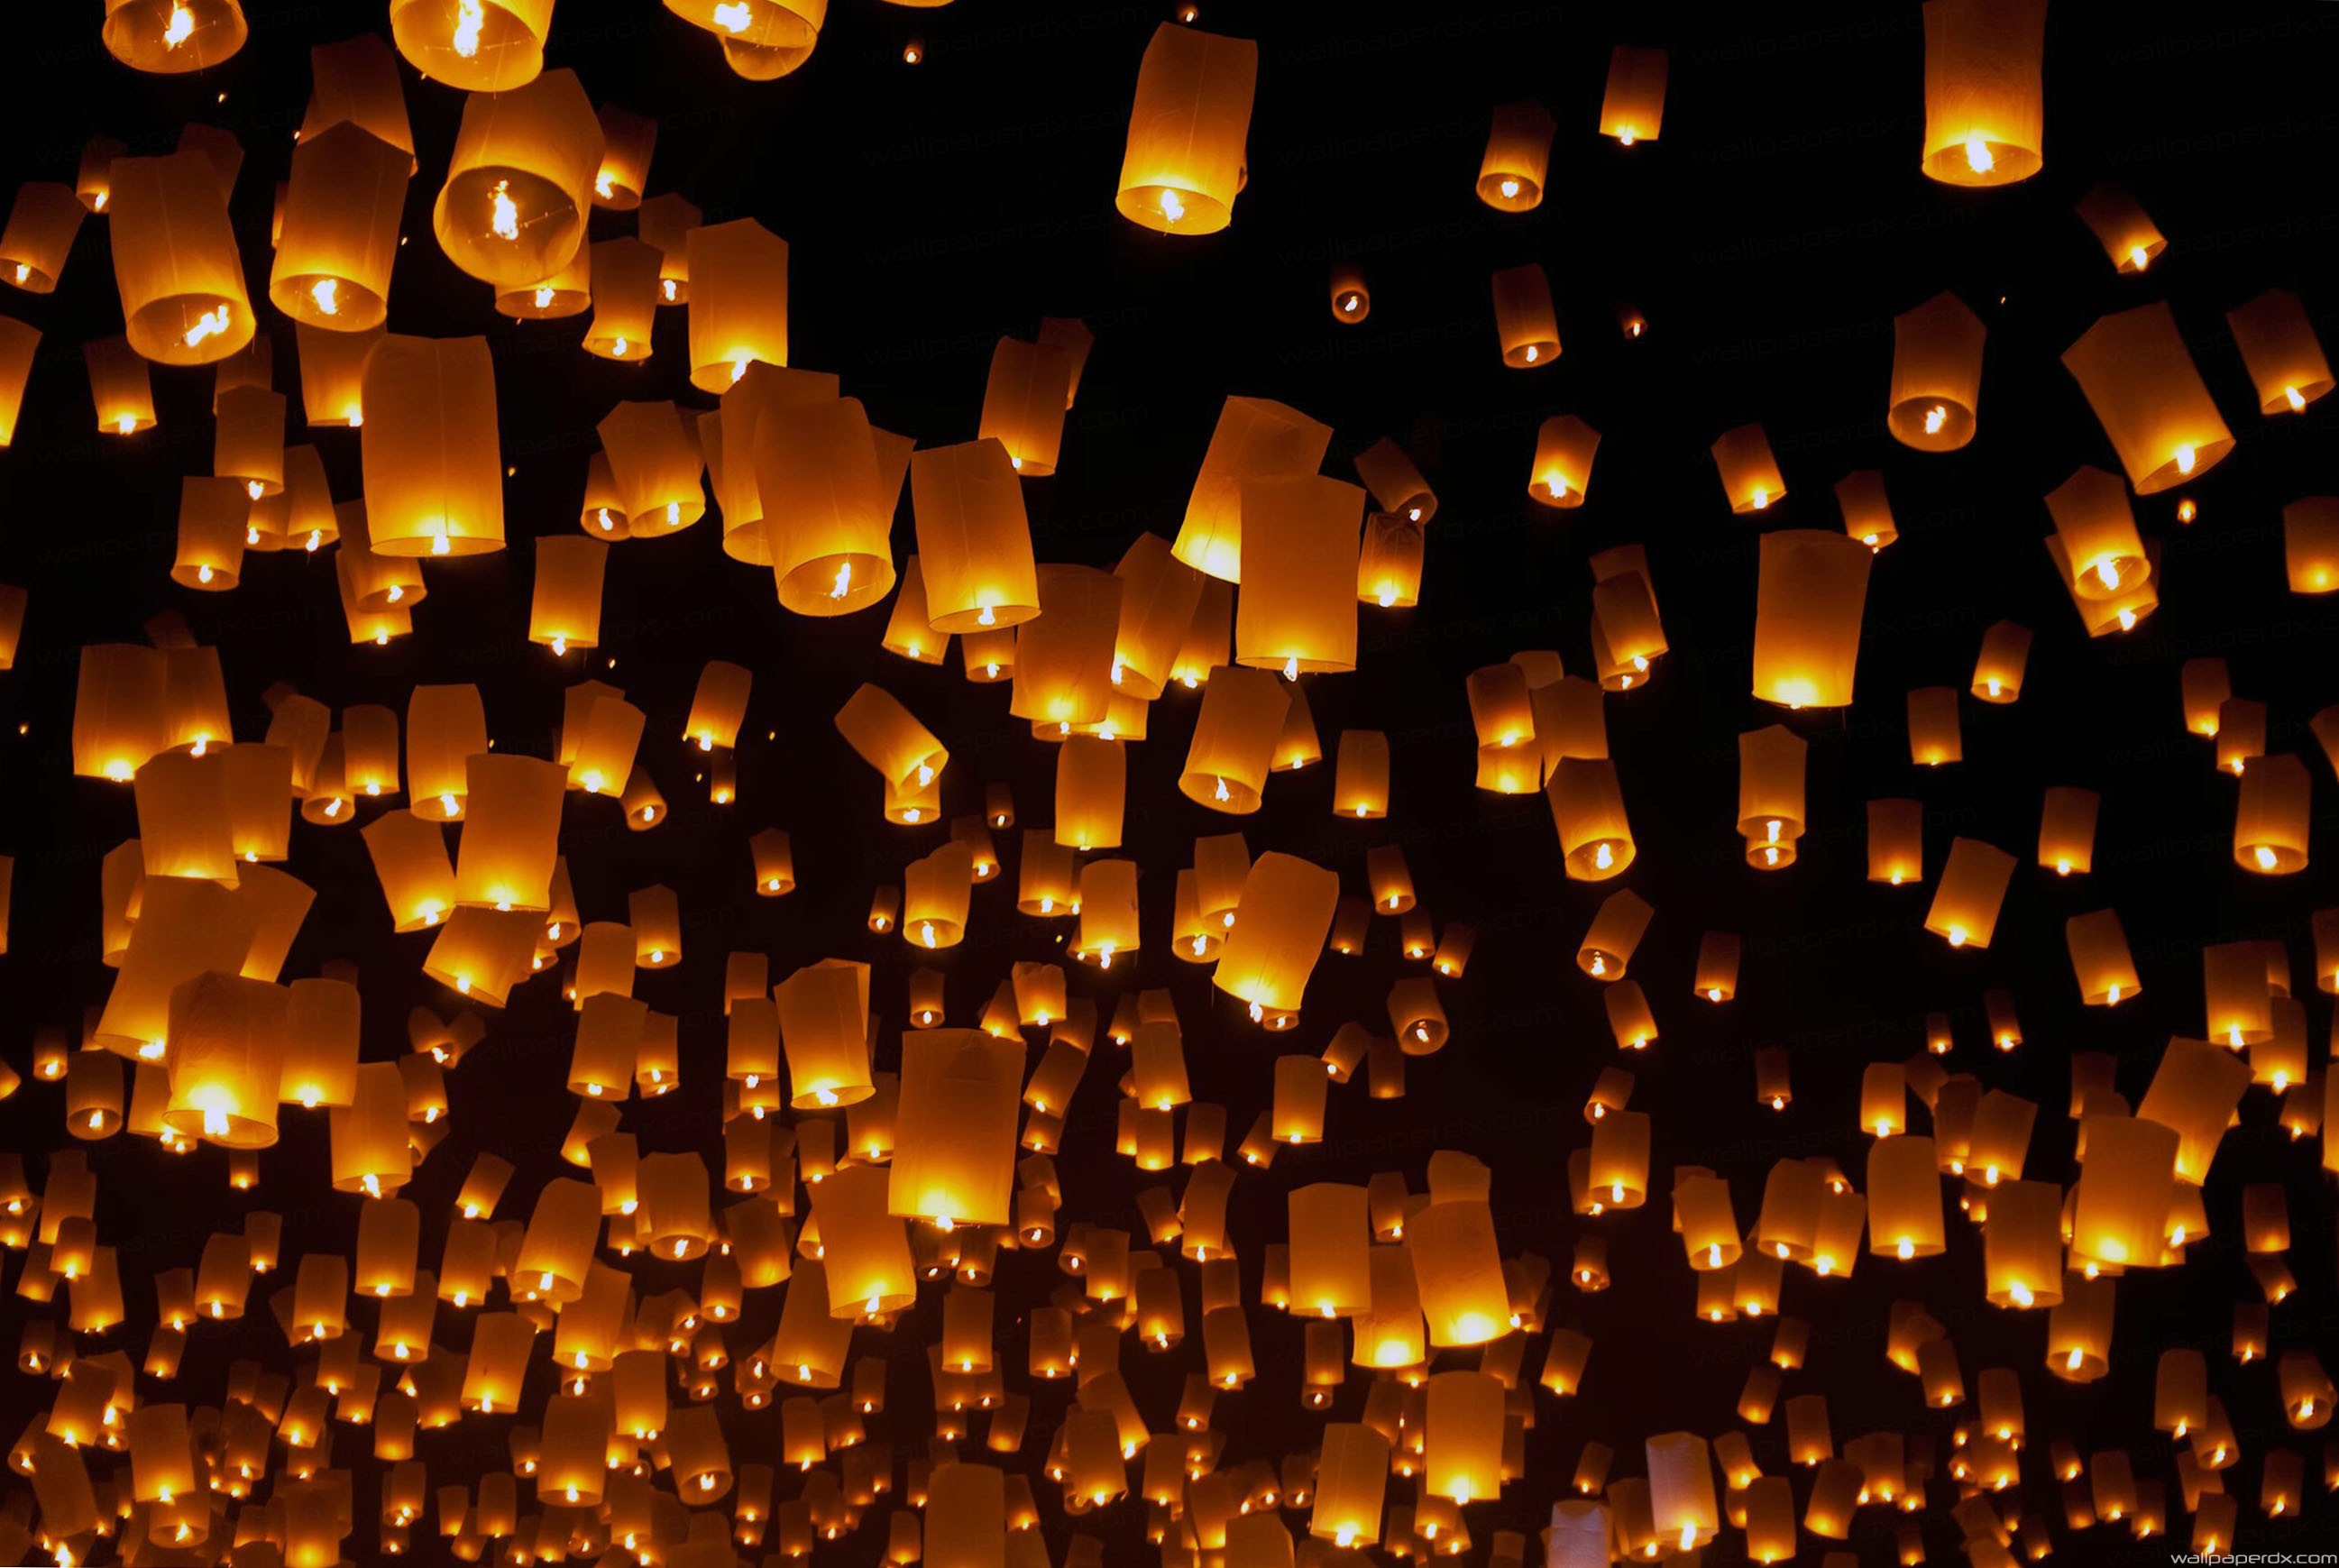 Lanterns Wallpapers ·① for Tangled Lanterns Iphone Wallpaper  150ifm